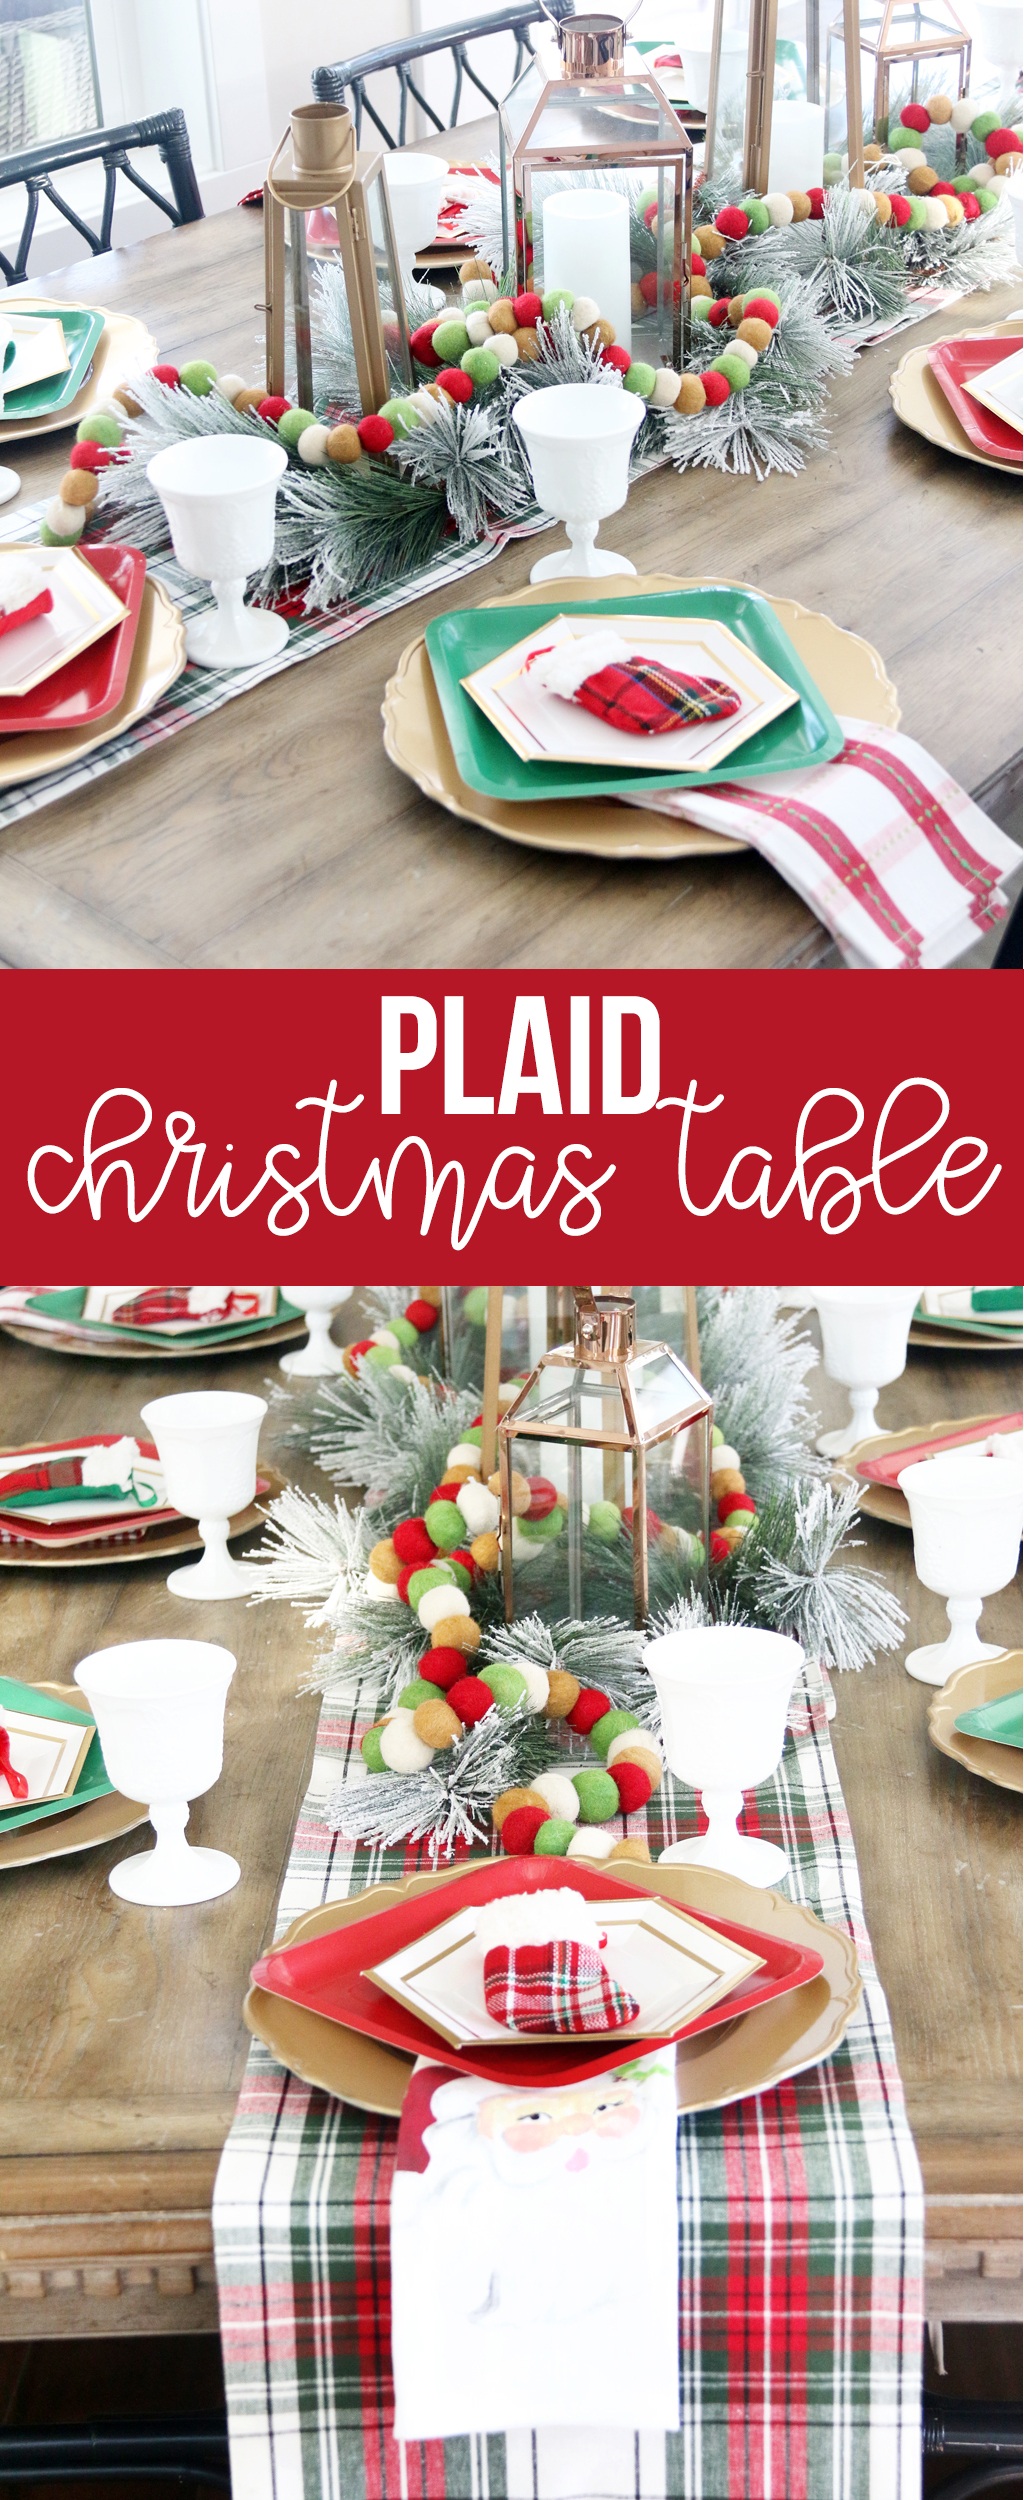 Plaid Christmas Table